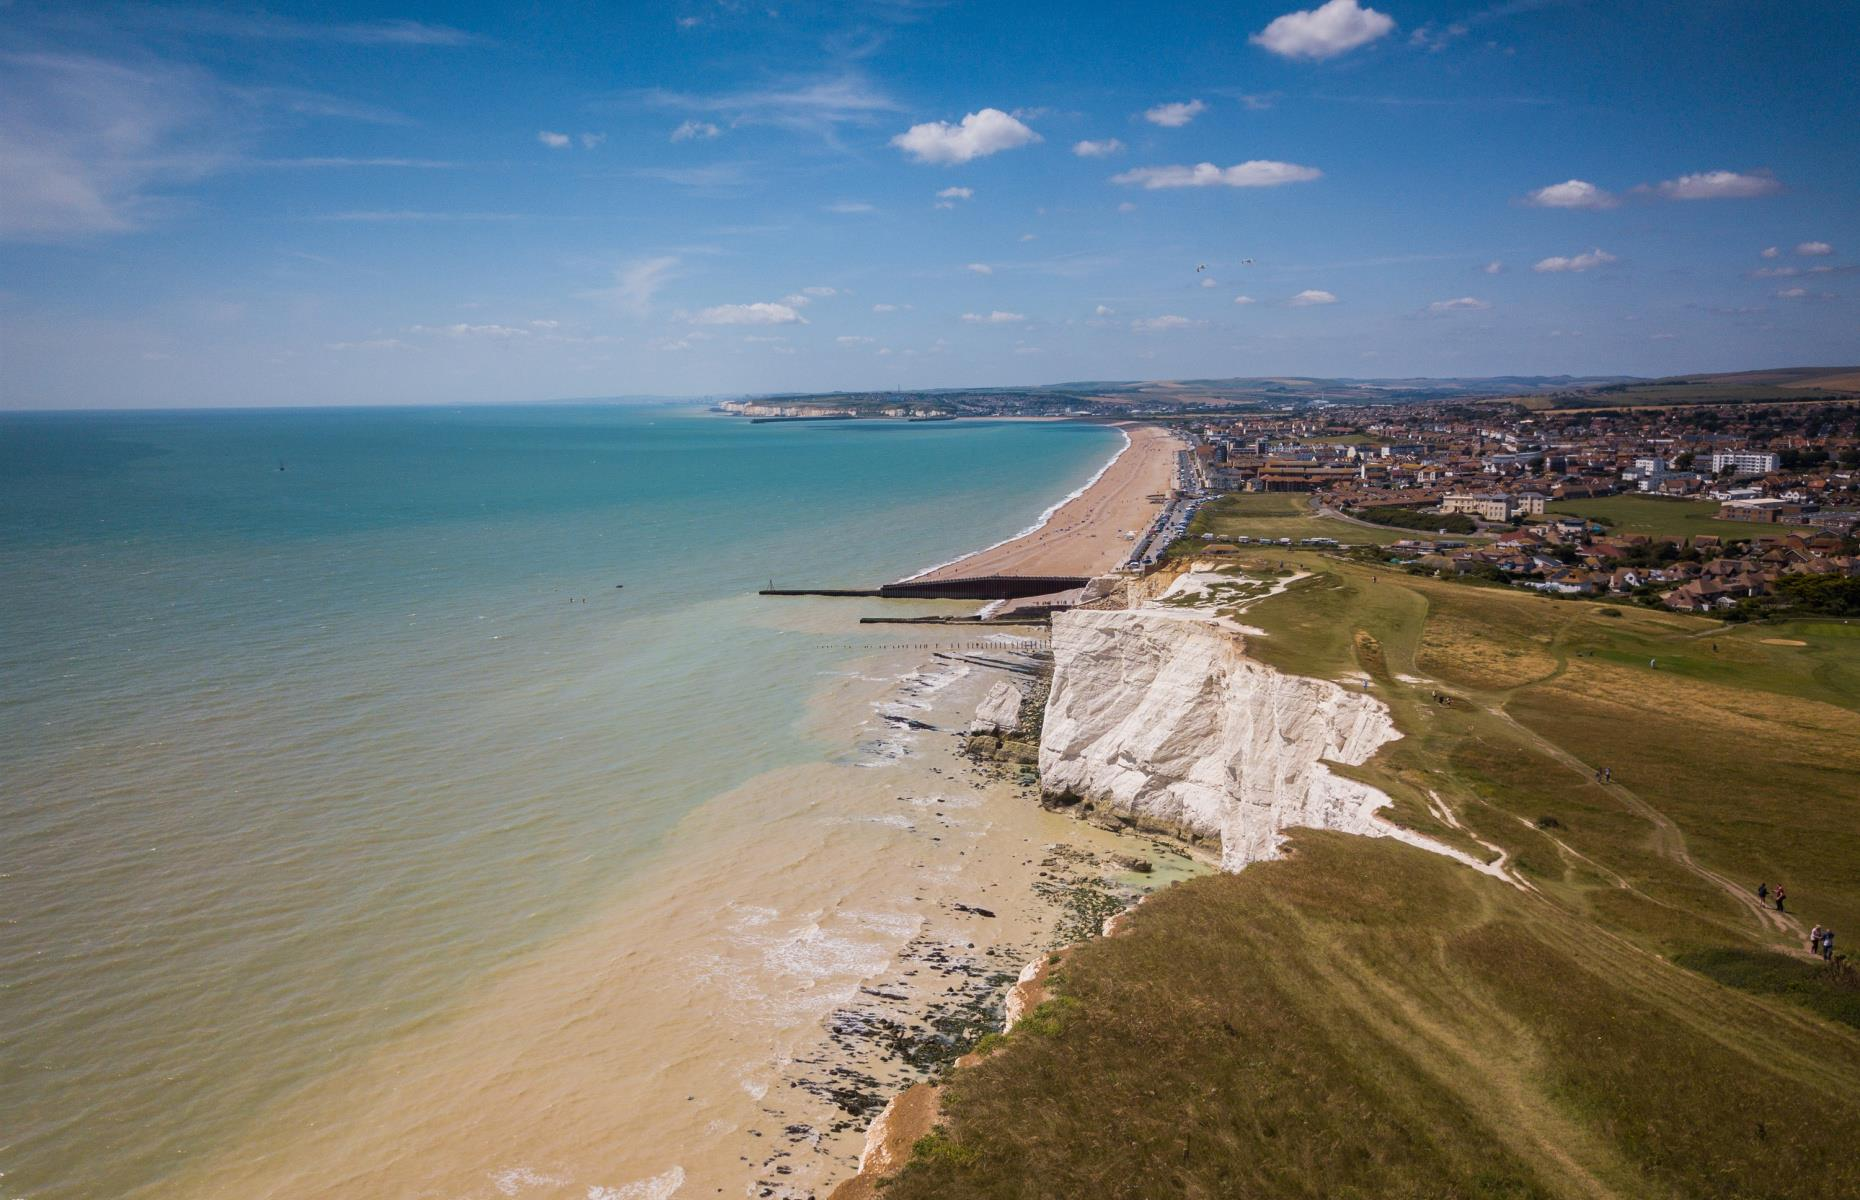 Slide 18 of 31: These chalk cliffs, known as the Seven Sisters, are some of the most famous geographical features of the English seaside. Visitors can enjoy a quiet stroll along the cliffs with easy access to the beach via a walking trail.